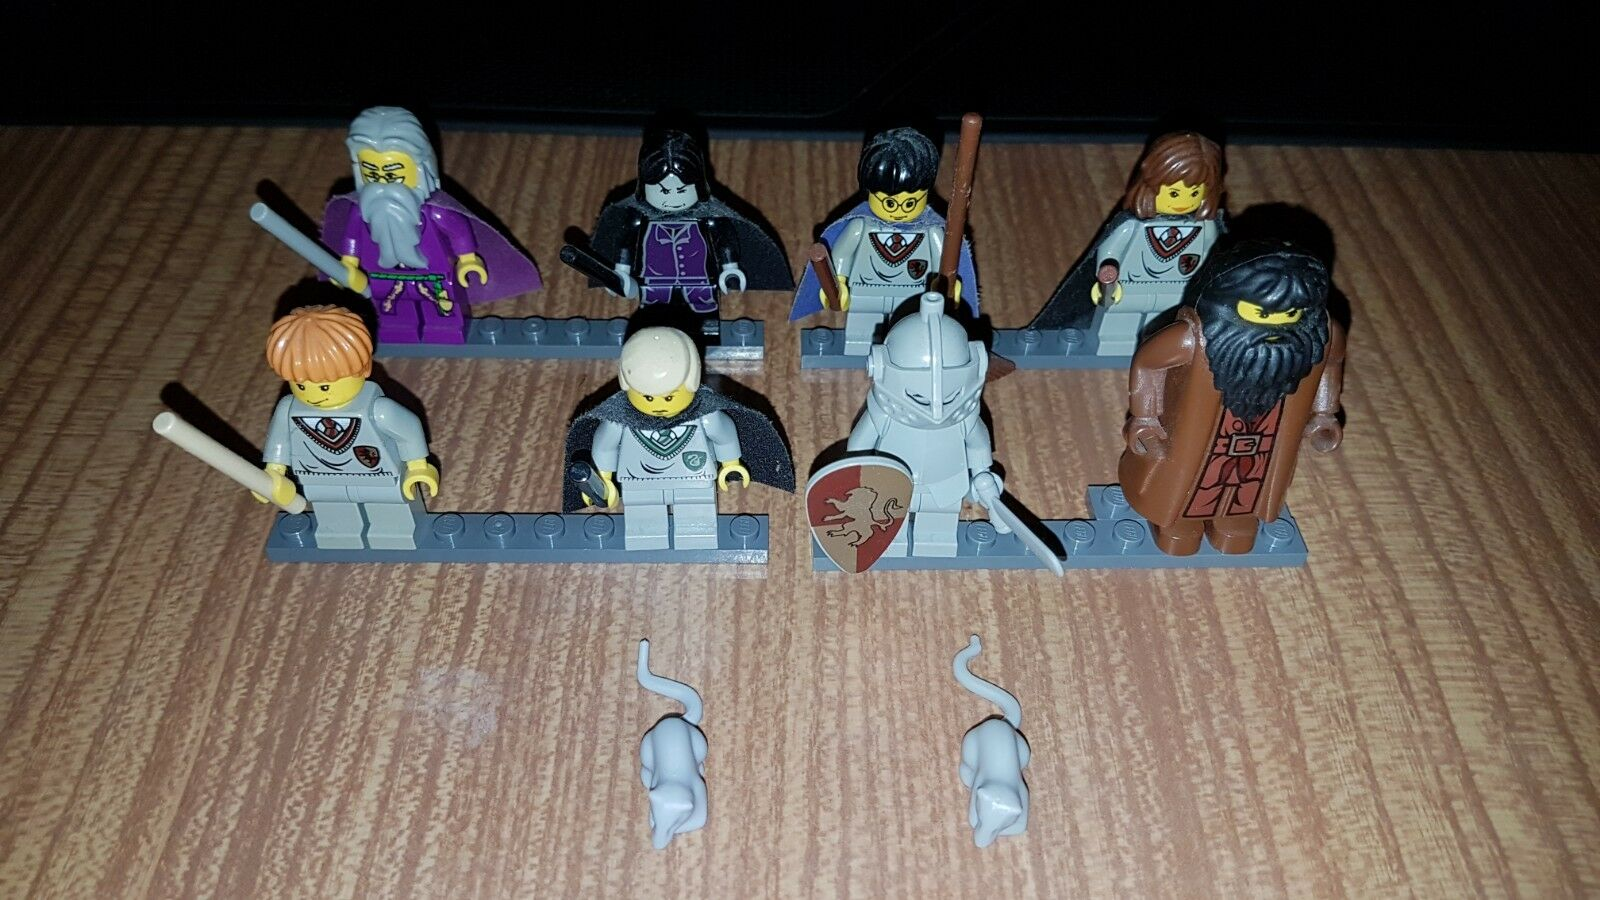 LEGO Harry Potter Minifigures from set 4709 Hogwarts Castle (2001)